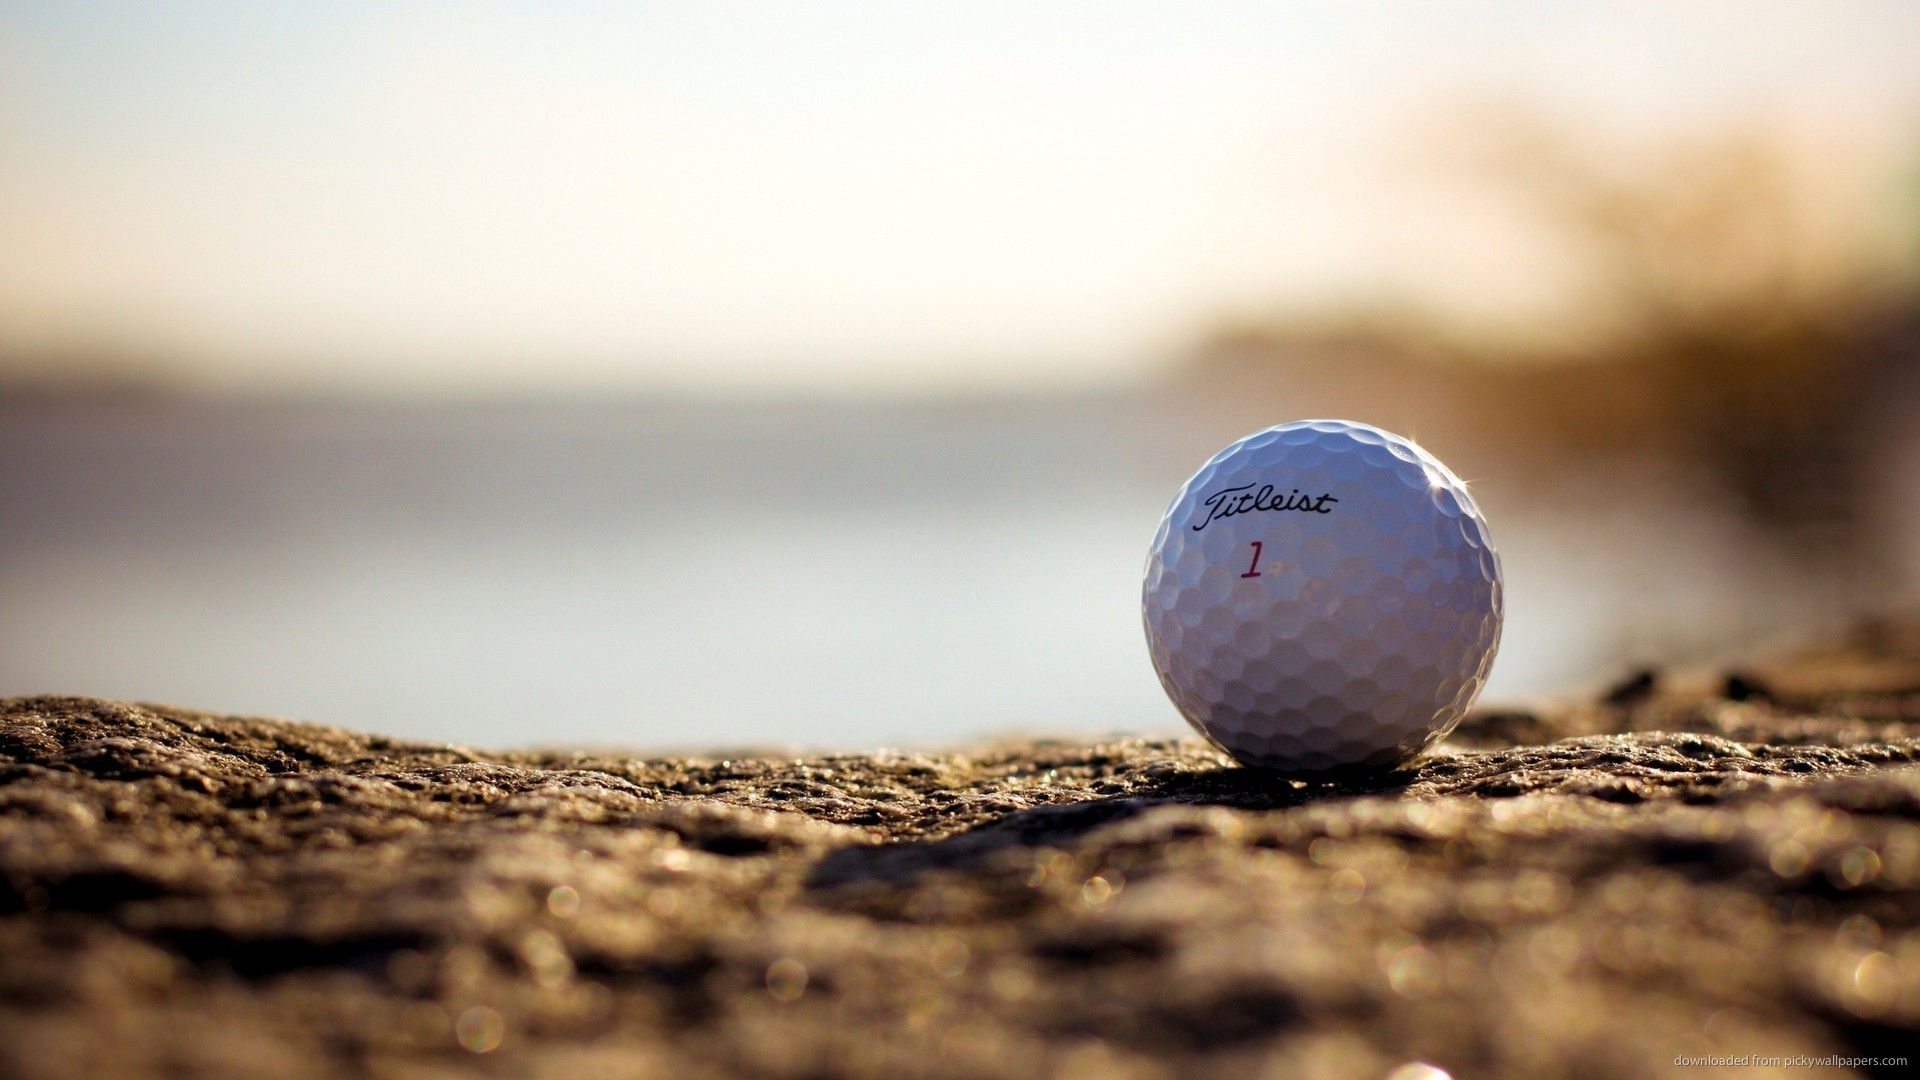 golf ball on a rocky surface